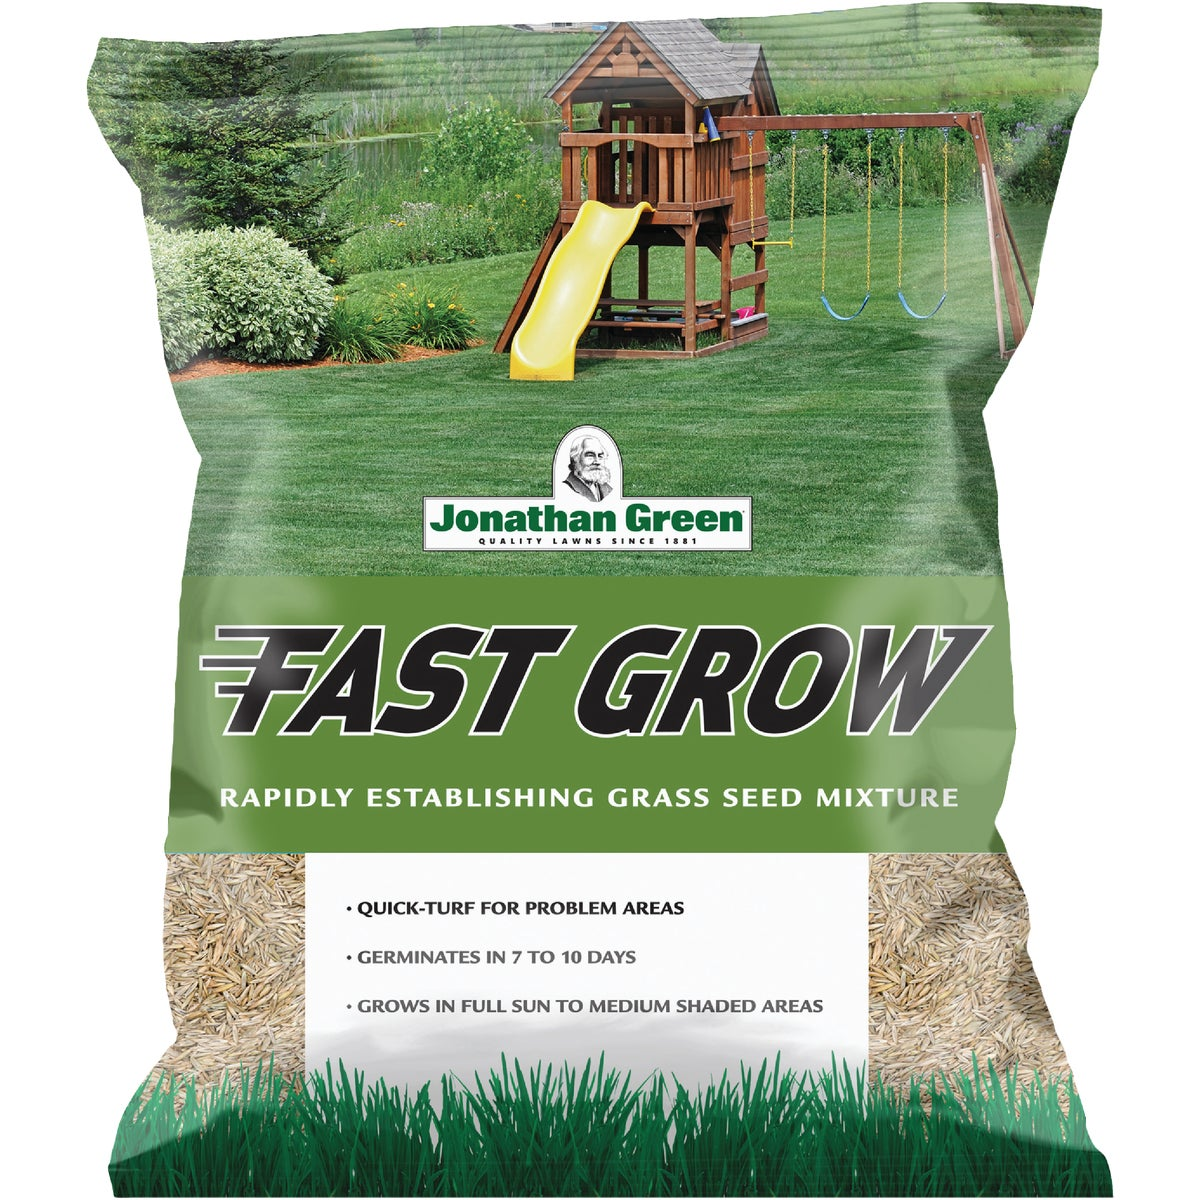 3LB FAST GROW SEED - 10820 by Jonathan Green